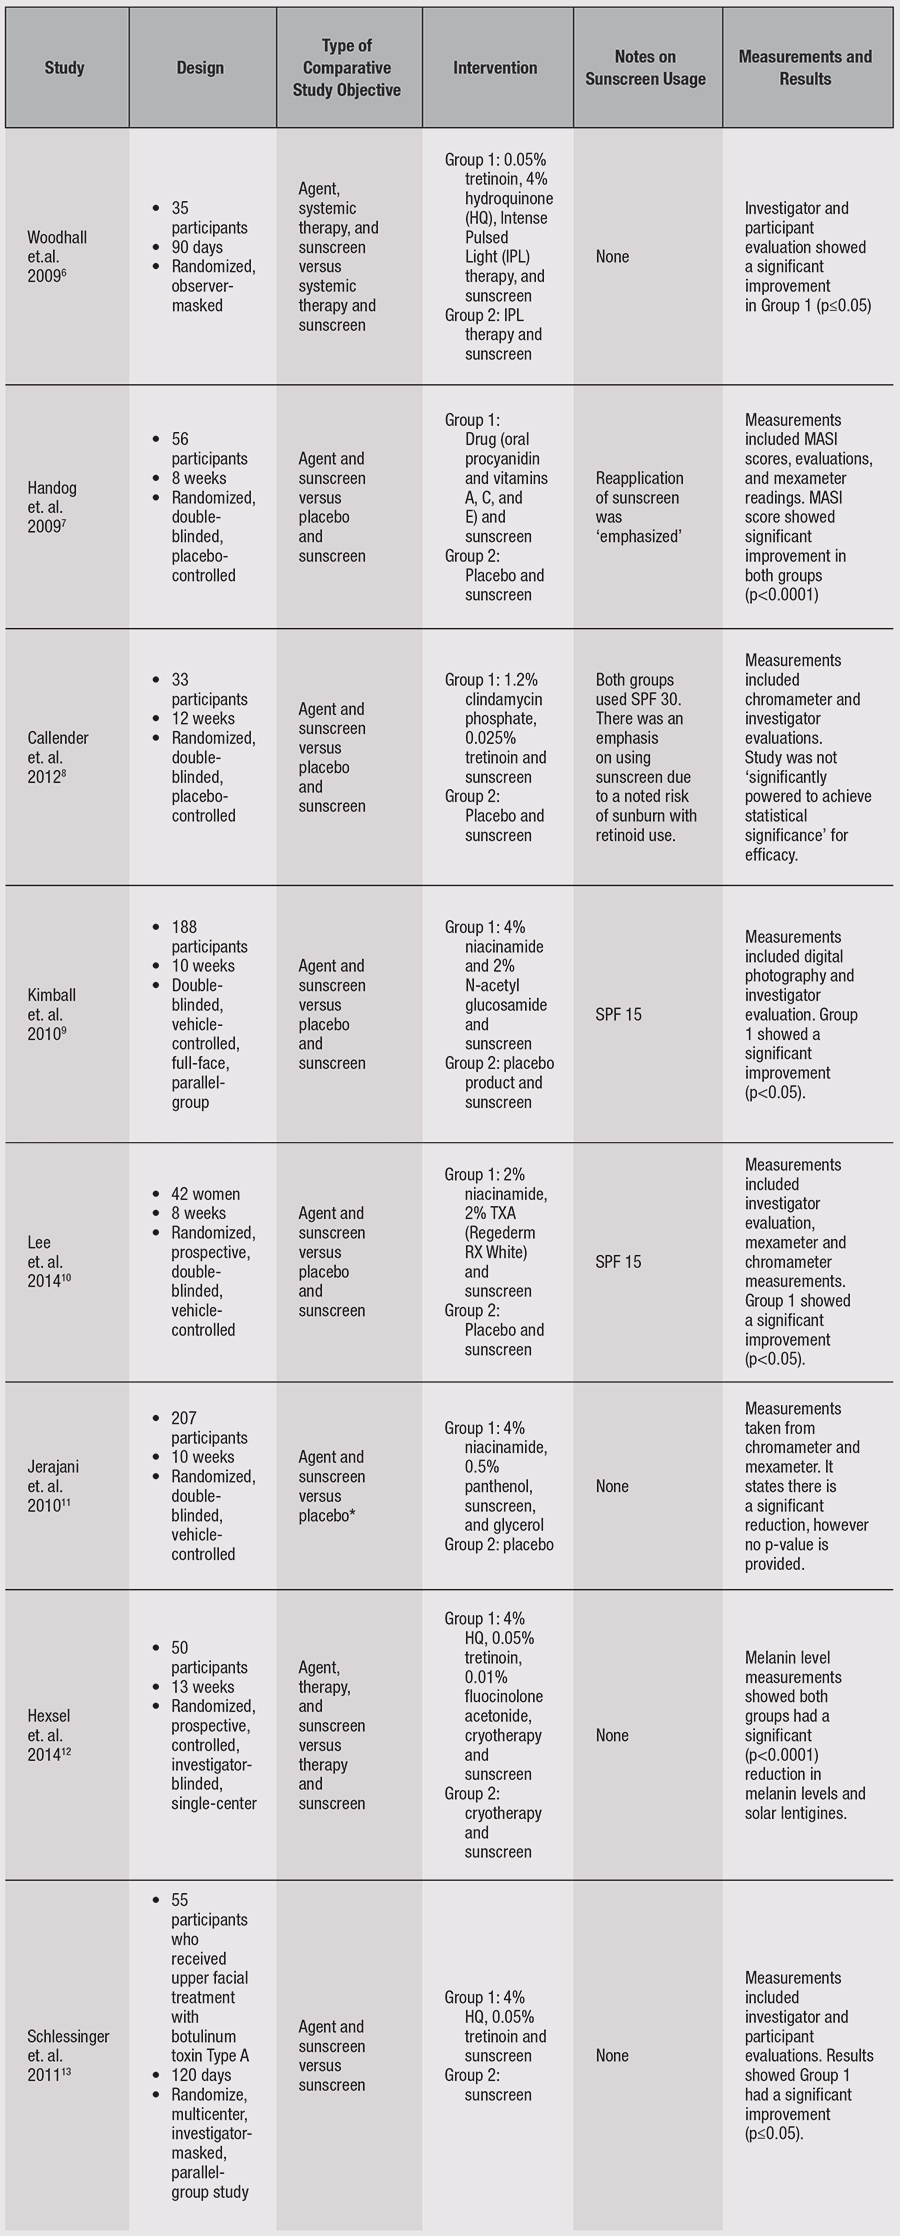 Table 1. Comparative Studies Using Sunscreen